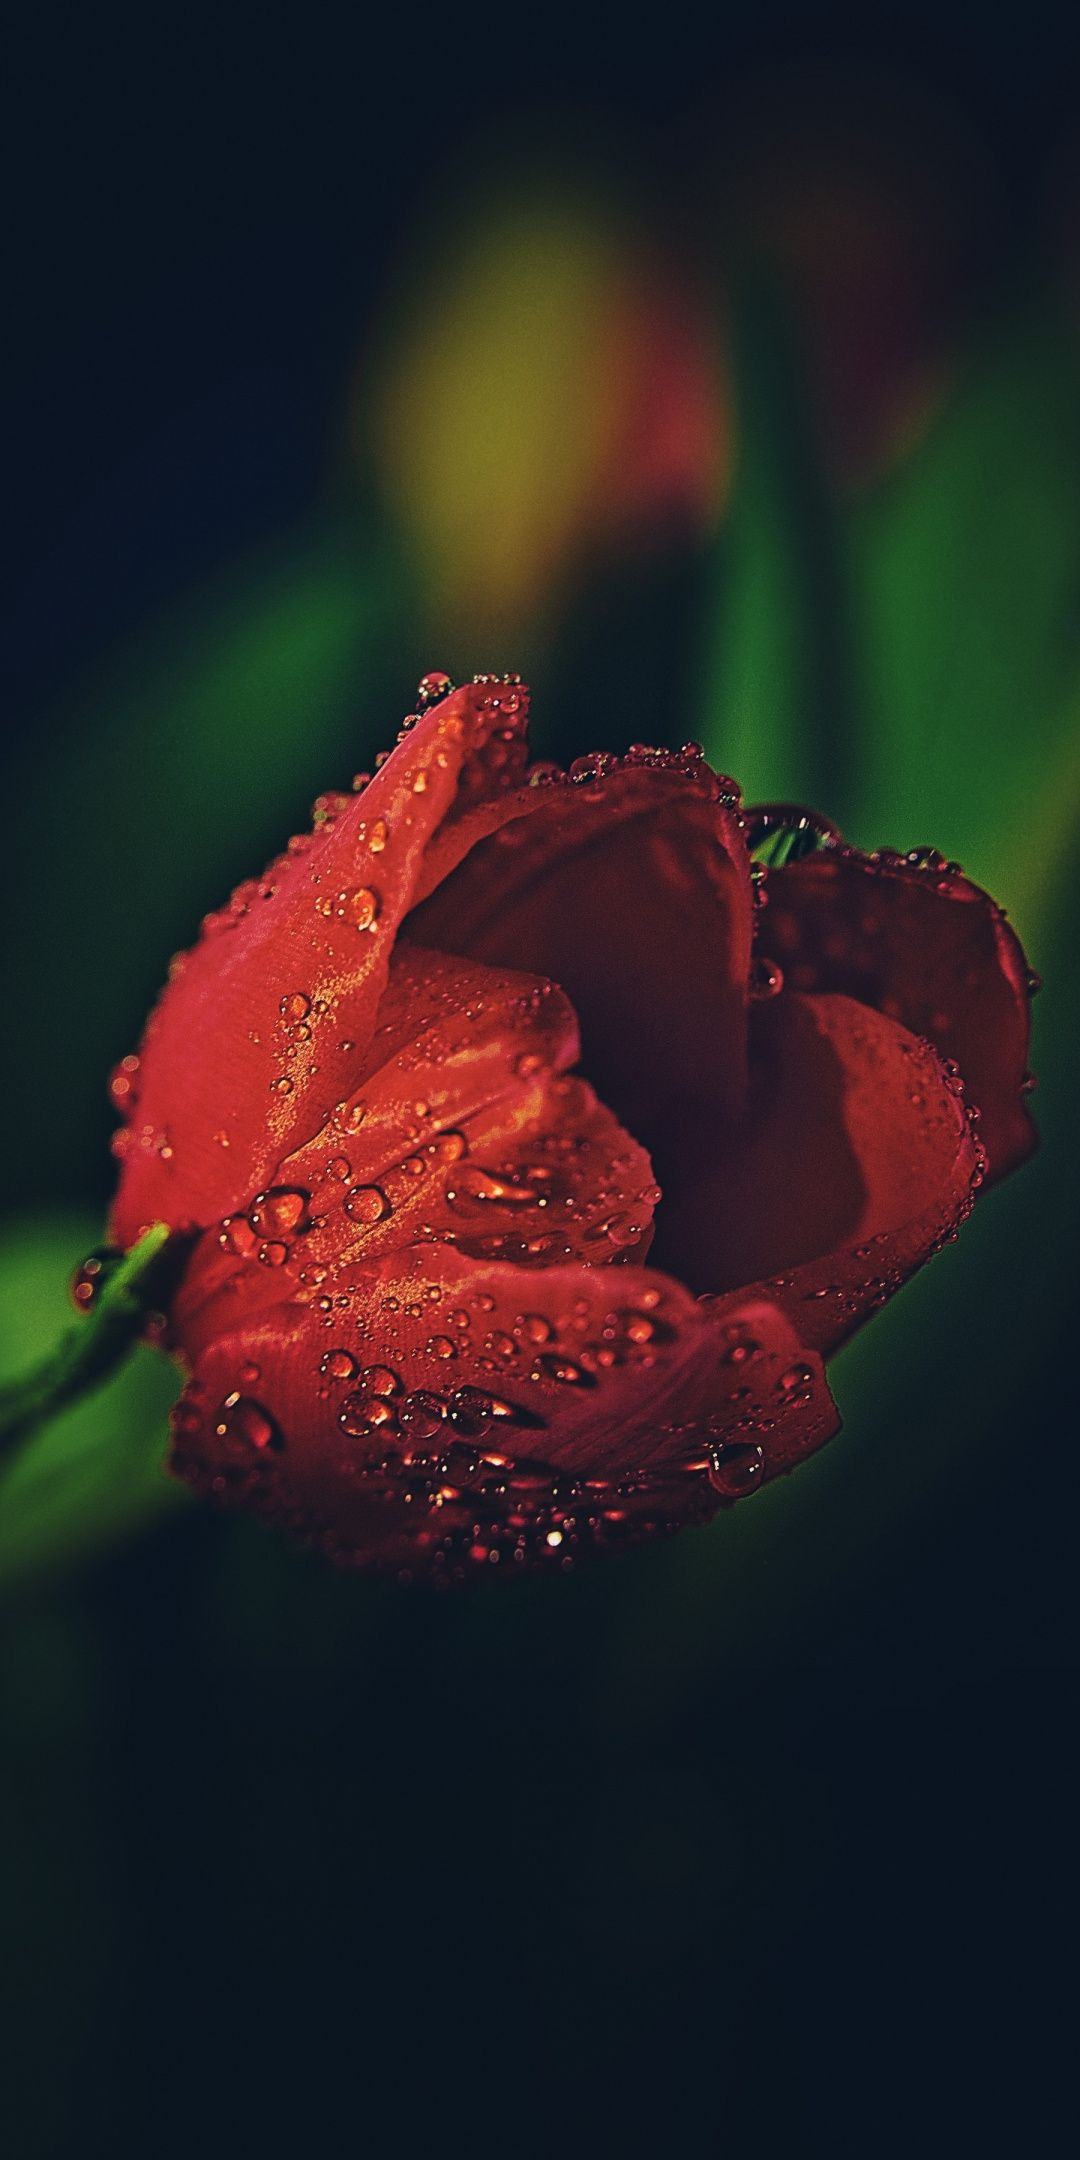 Drops Red Tulip Close Up 1080x2160 Wallpaper Red Tulips Tulips Tulips Flowers